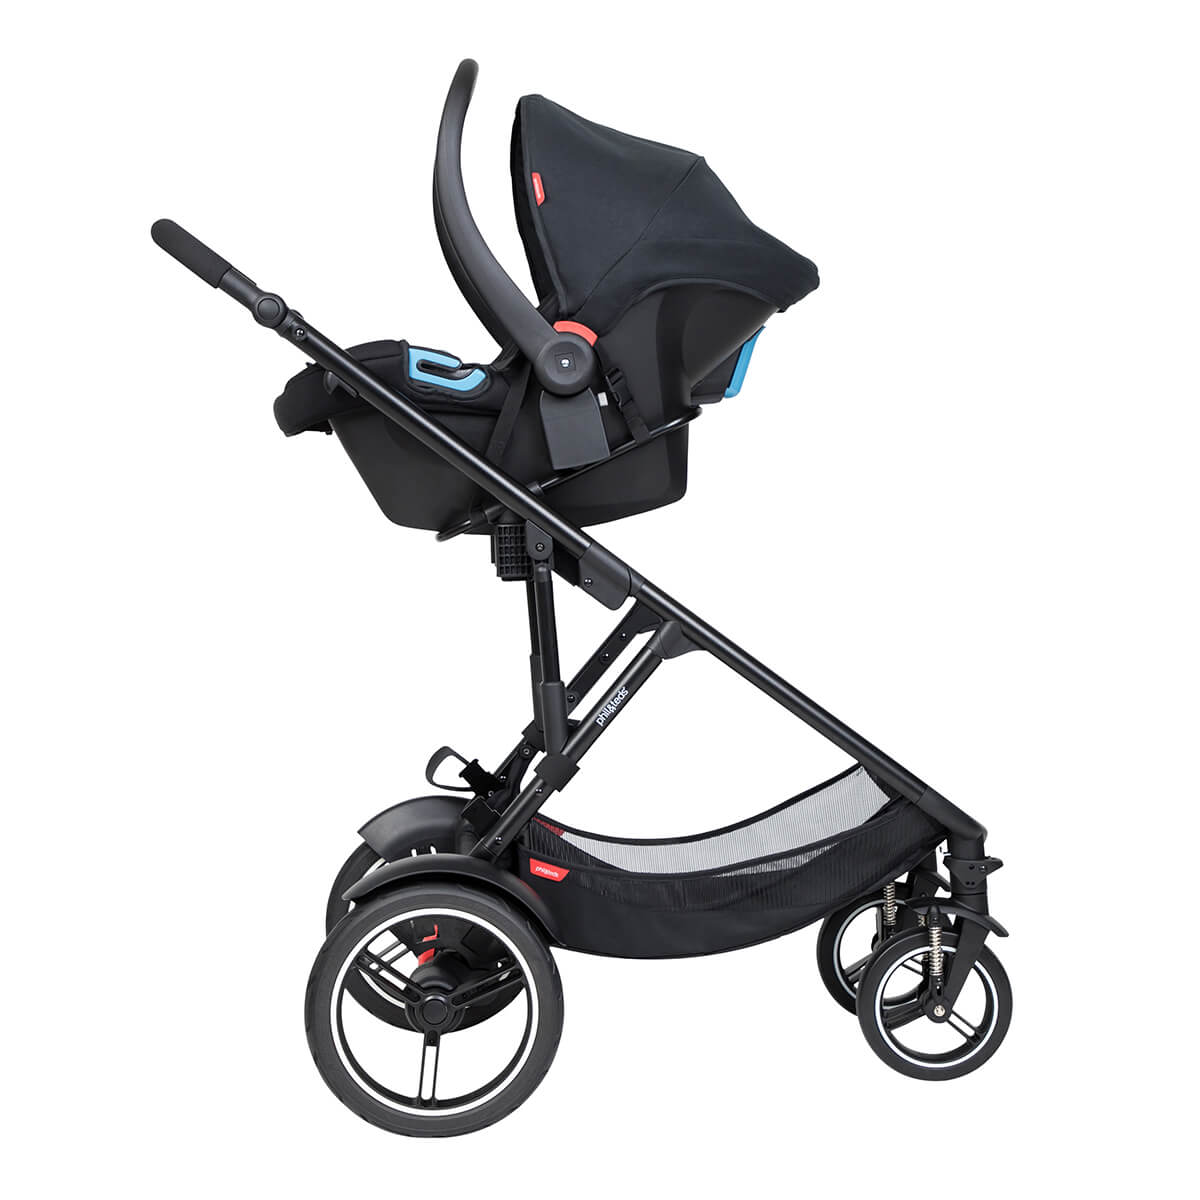 https://cdn.accentuate.io/4384006013025/19793938874538/philteds-voyager-buggy-with-travel-system-in-parent-facing-mode-v1626147758898.jpg?1200x1200